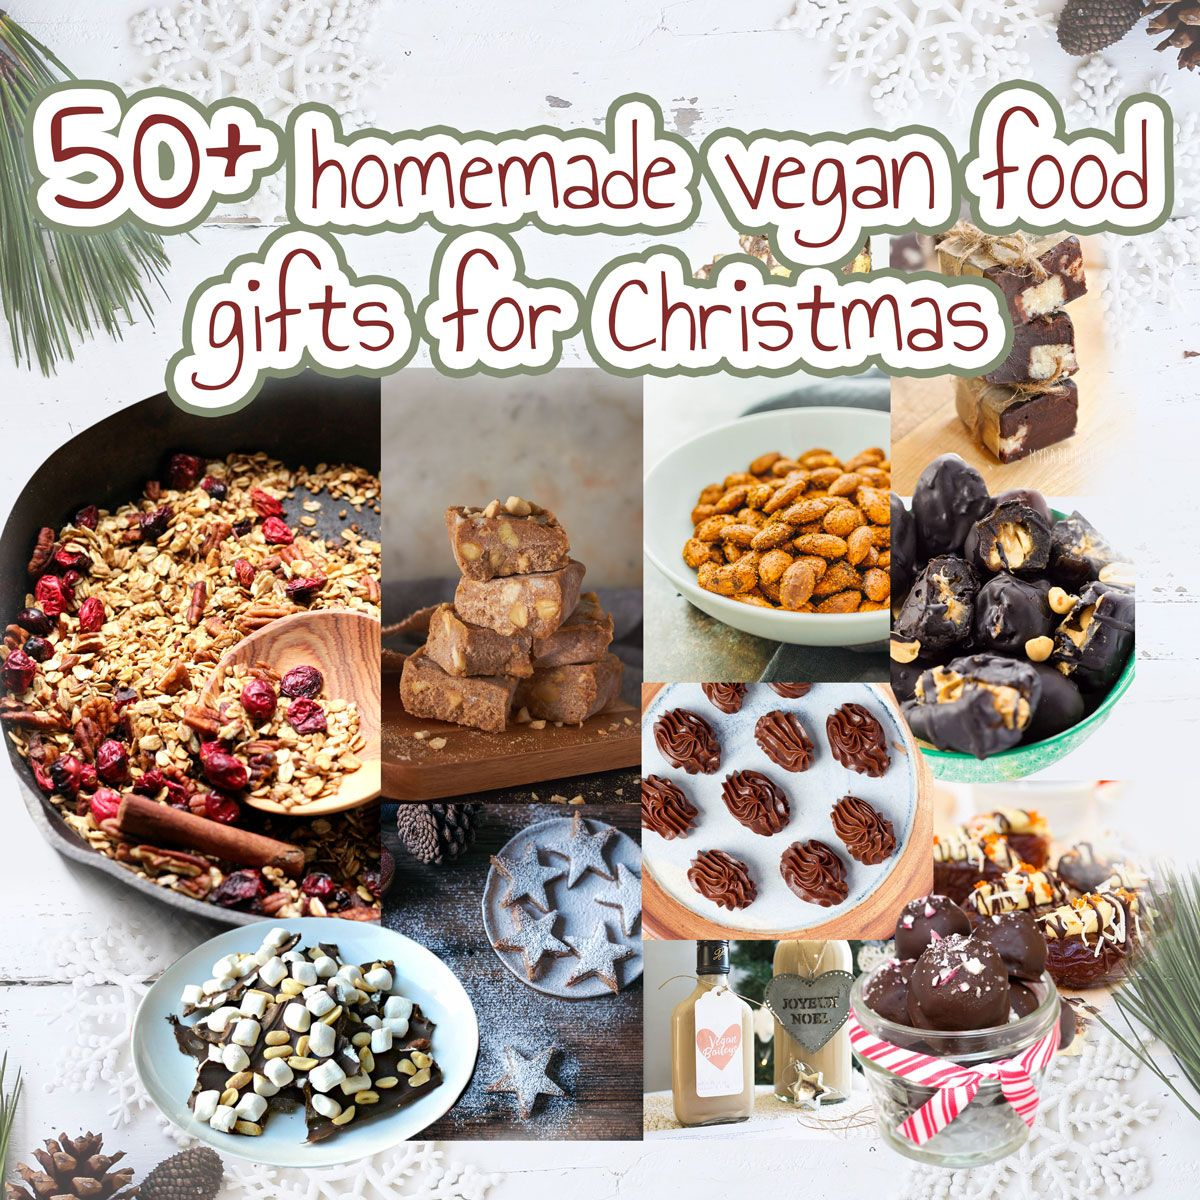 Homemade vegan food gifts for christmas food gifts vegans and homemade vegan food gifts for christmas forumfinder